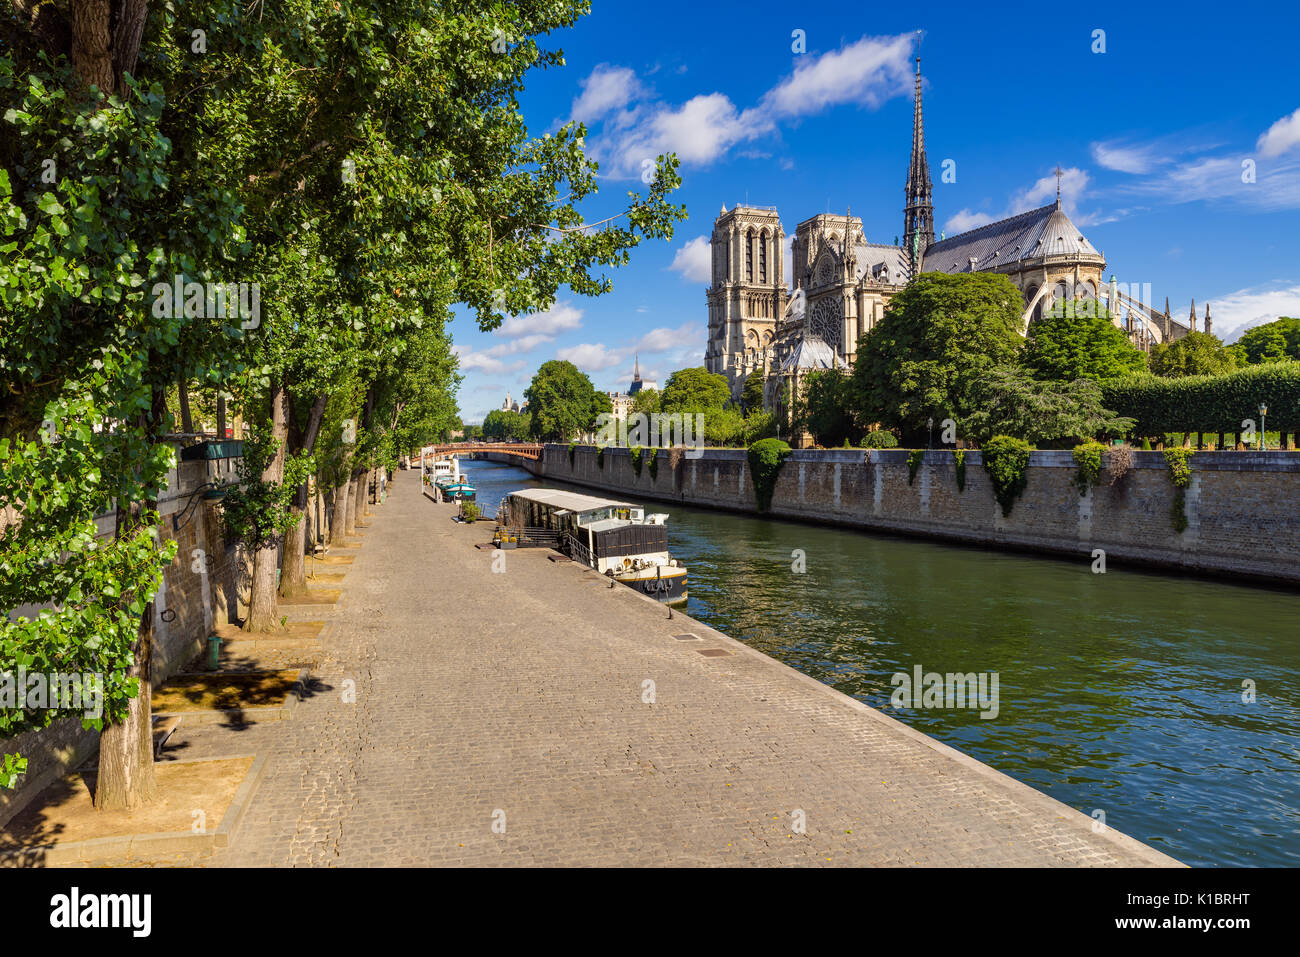 Notre Dame de Paris cathedral on Ile de La Cite with the Seine River and Quai de Montebello in summer. Paris, France - Stock Image